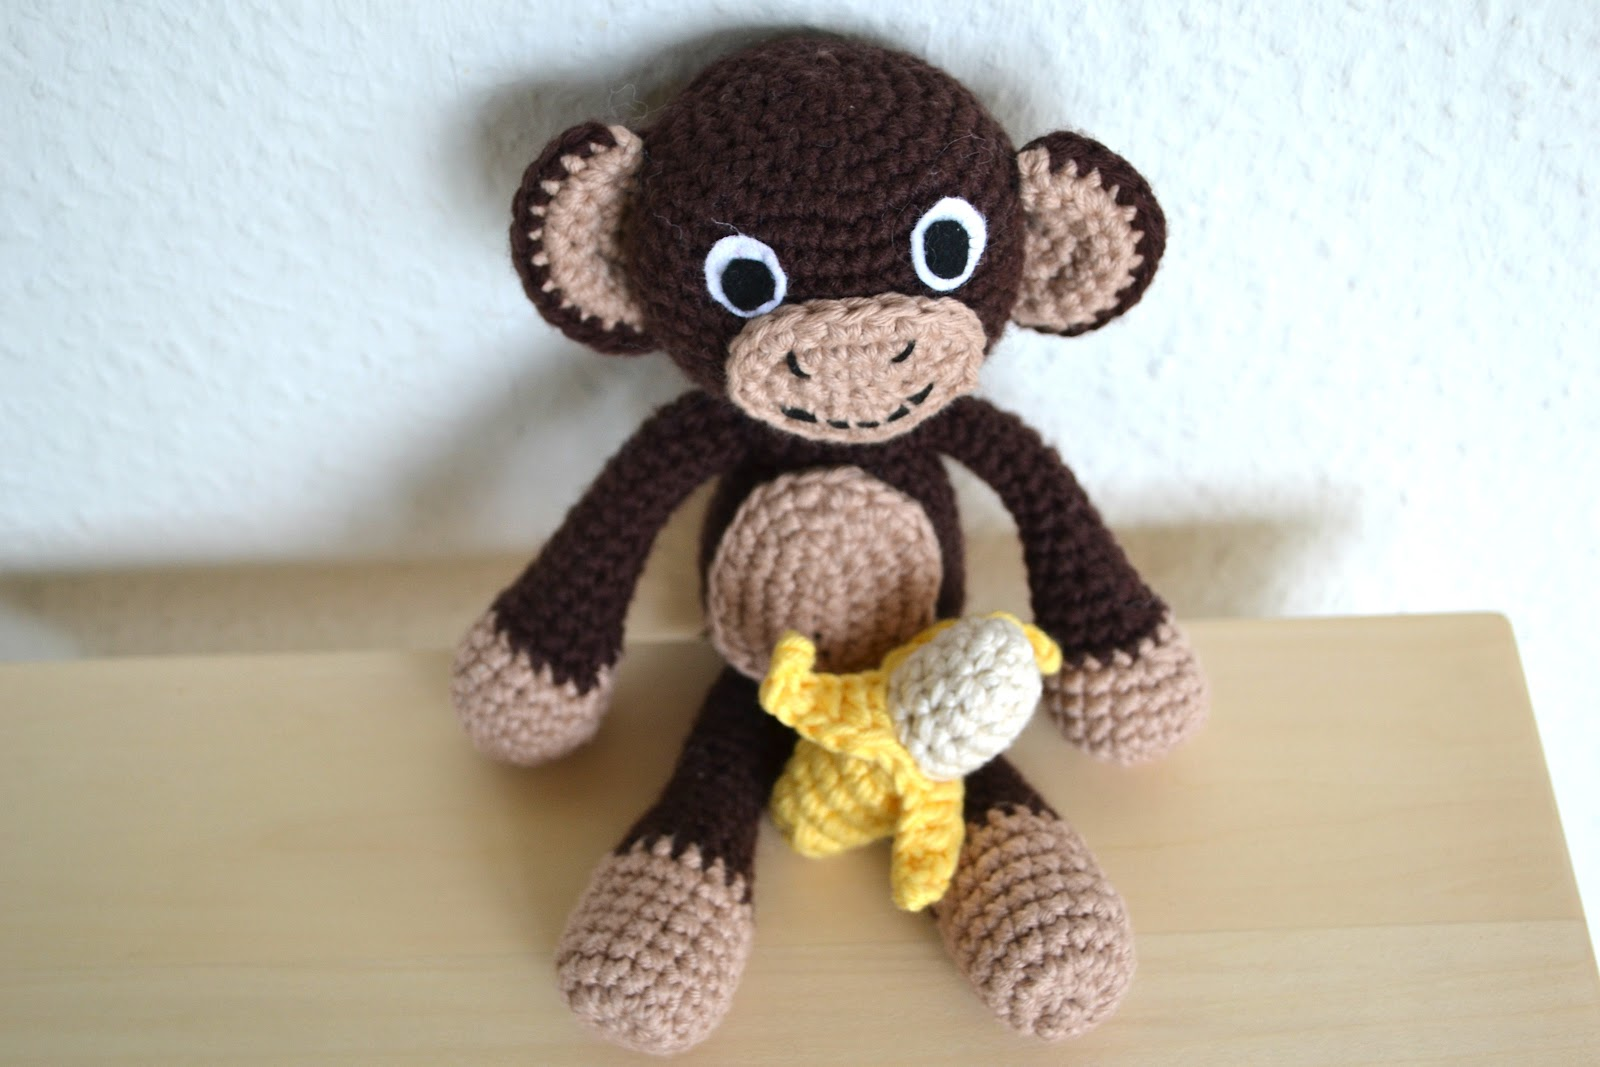 mr monkey Mr monkey wiki, bio, age, height, girlfriend, unknown facts, parents real name: mr monkey wiki, bio, age, height, girlfriend.